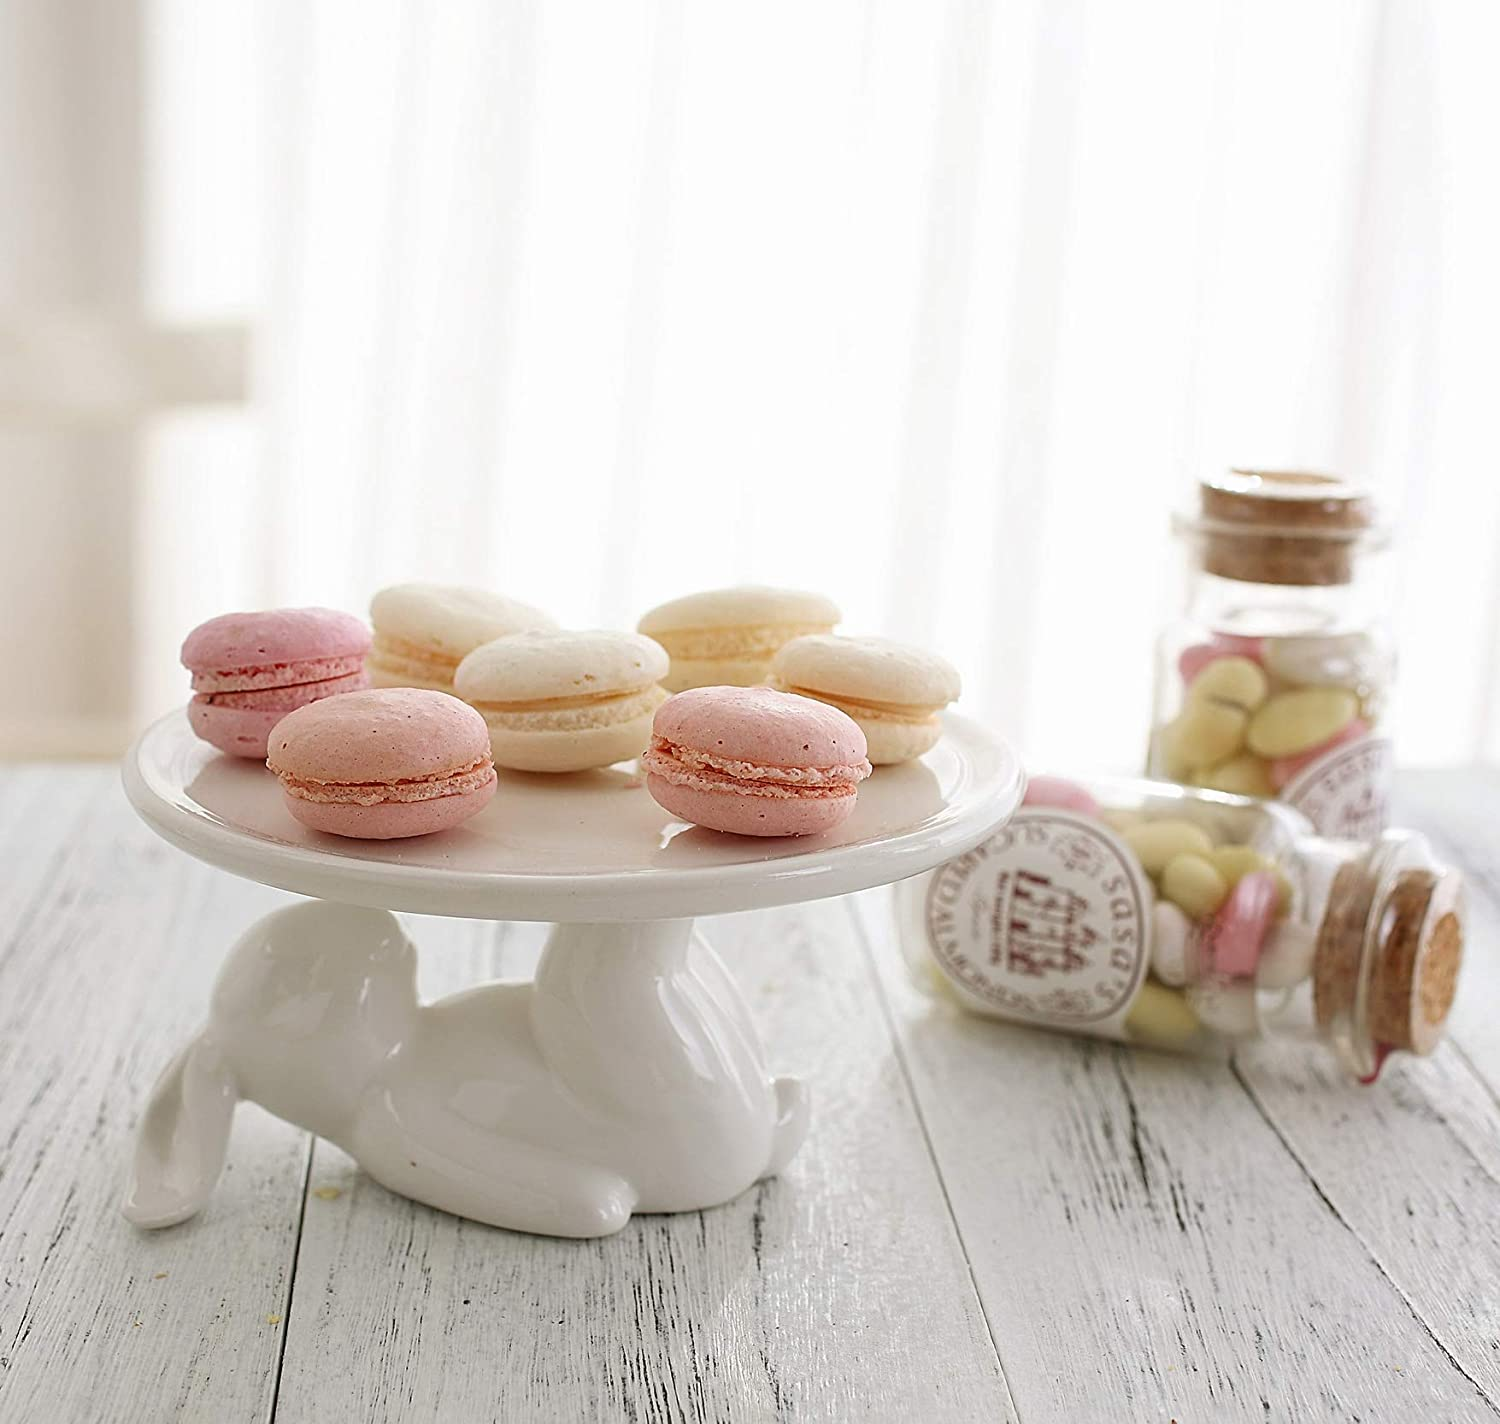 LA JOLIE MUSE Cupcake Stand Ceramic Dessert Plates for Snacks and Cookies, Bunny Candy Dish, 6.6 Inch White, Party Kitchen Gift